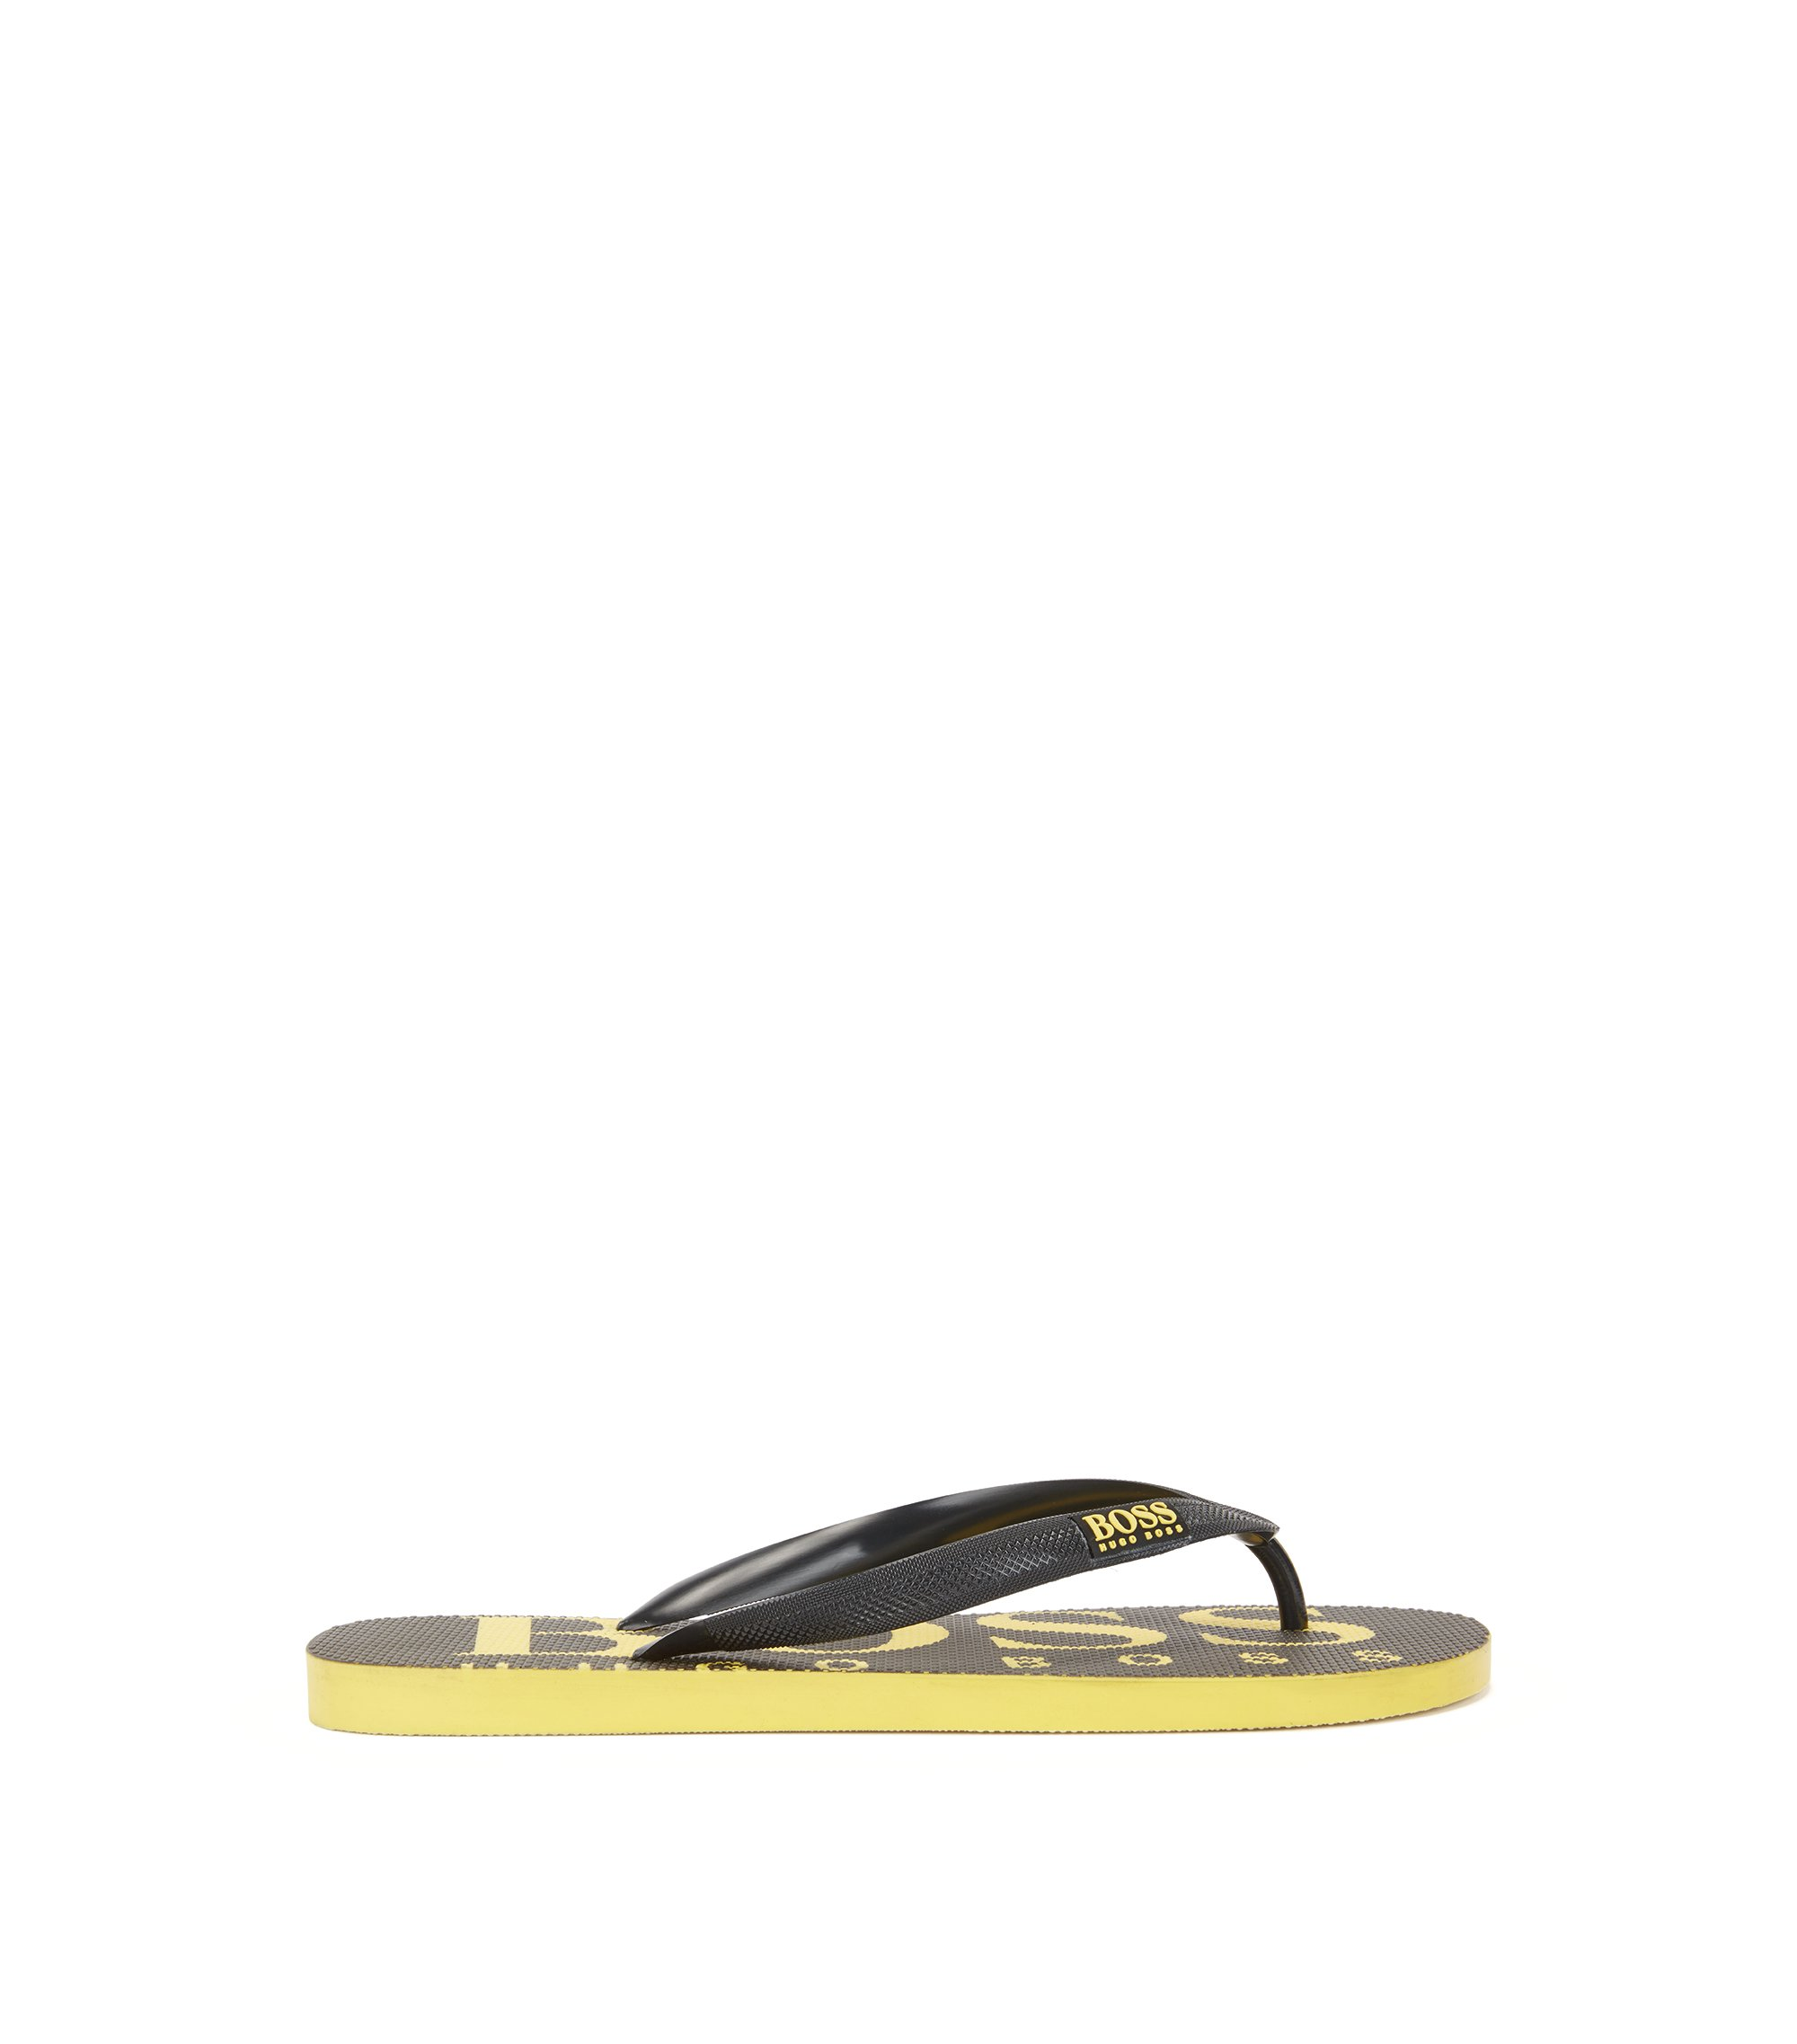 Rubber flip-flops with contrasting logo detail, Black